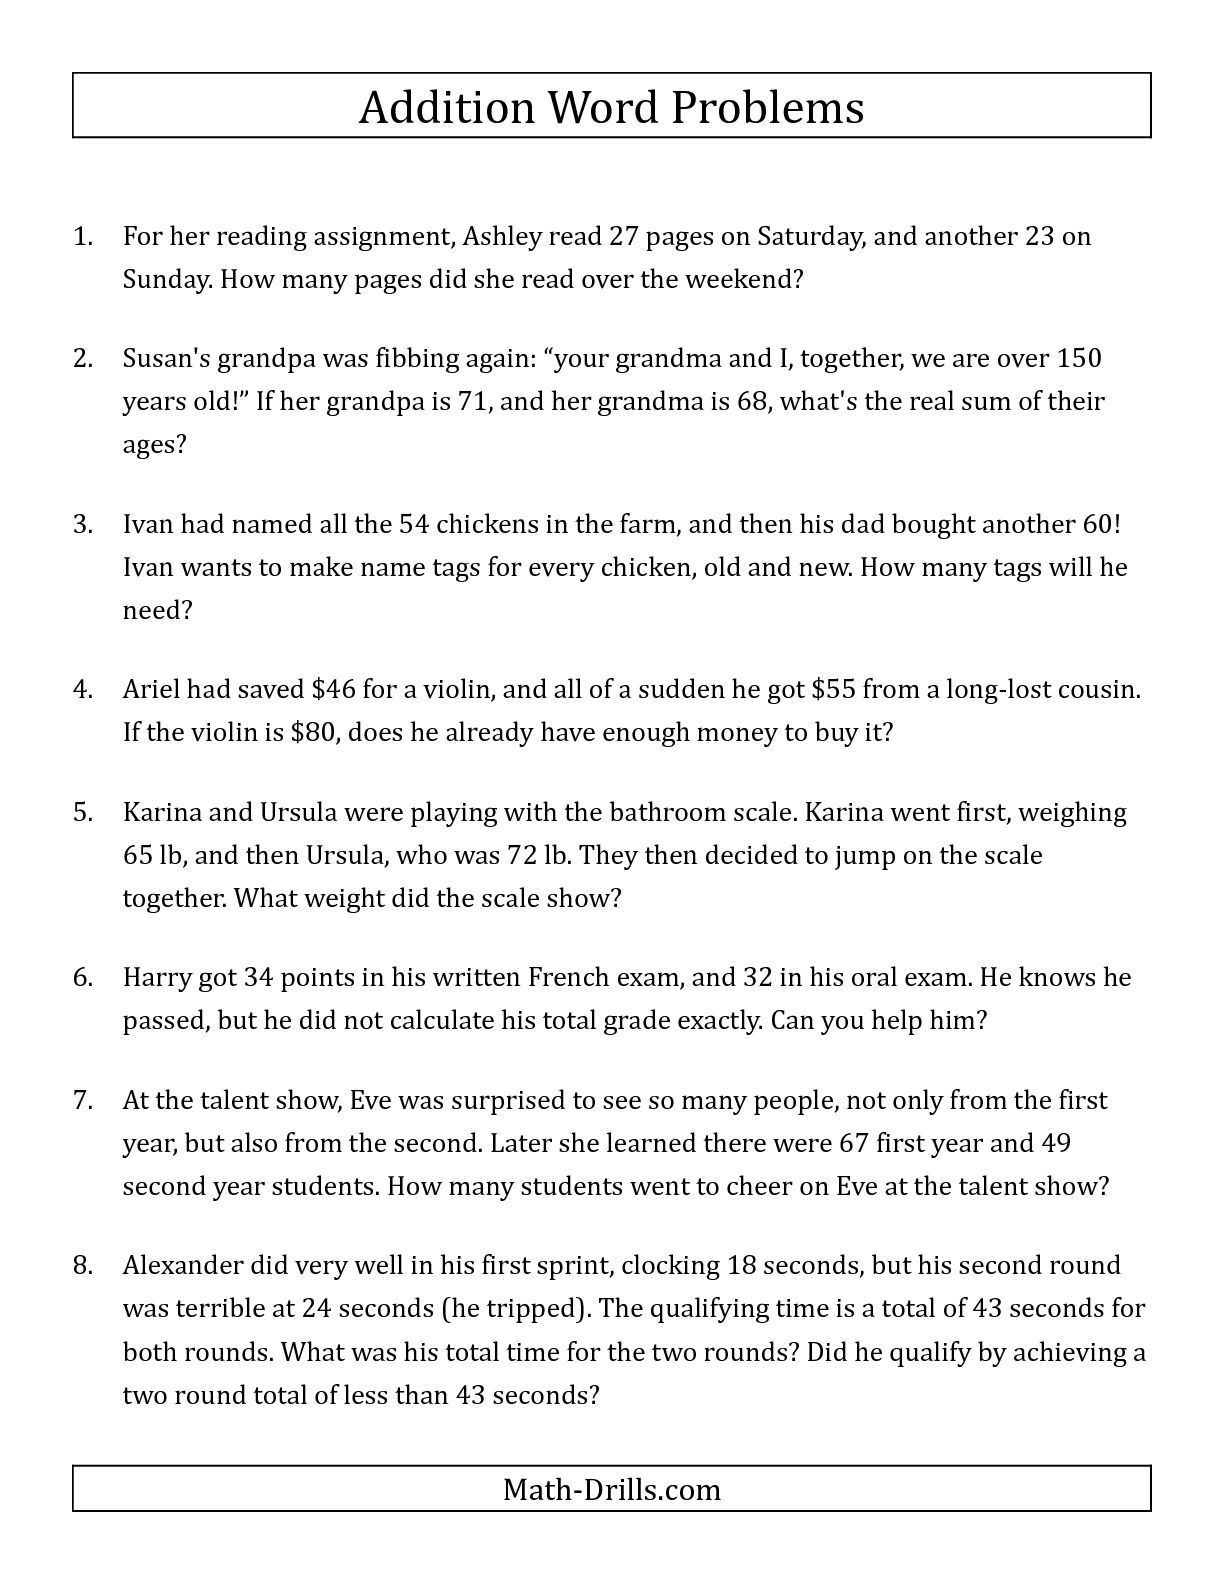 The Single Step Addition Word Problems Using Two Digit Numbers A Word Problems Worksheet